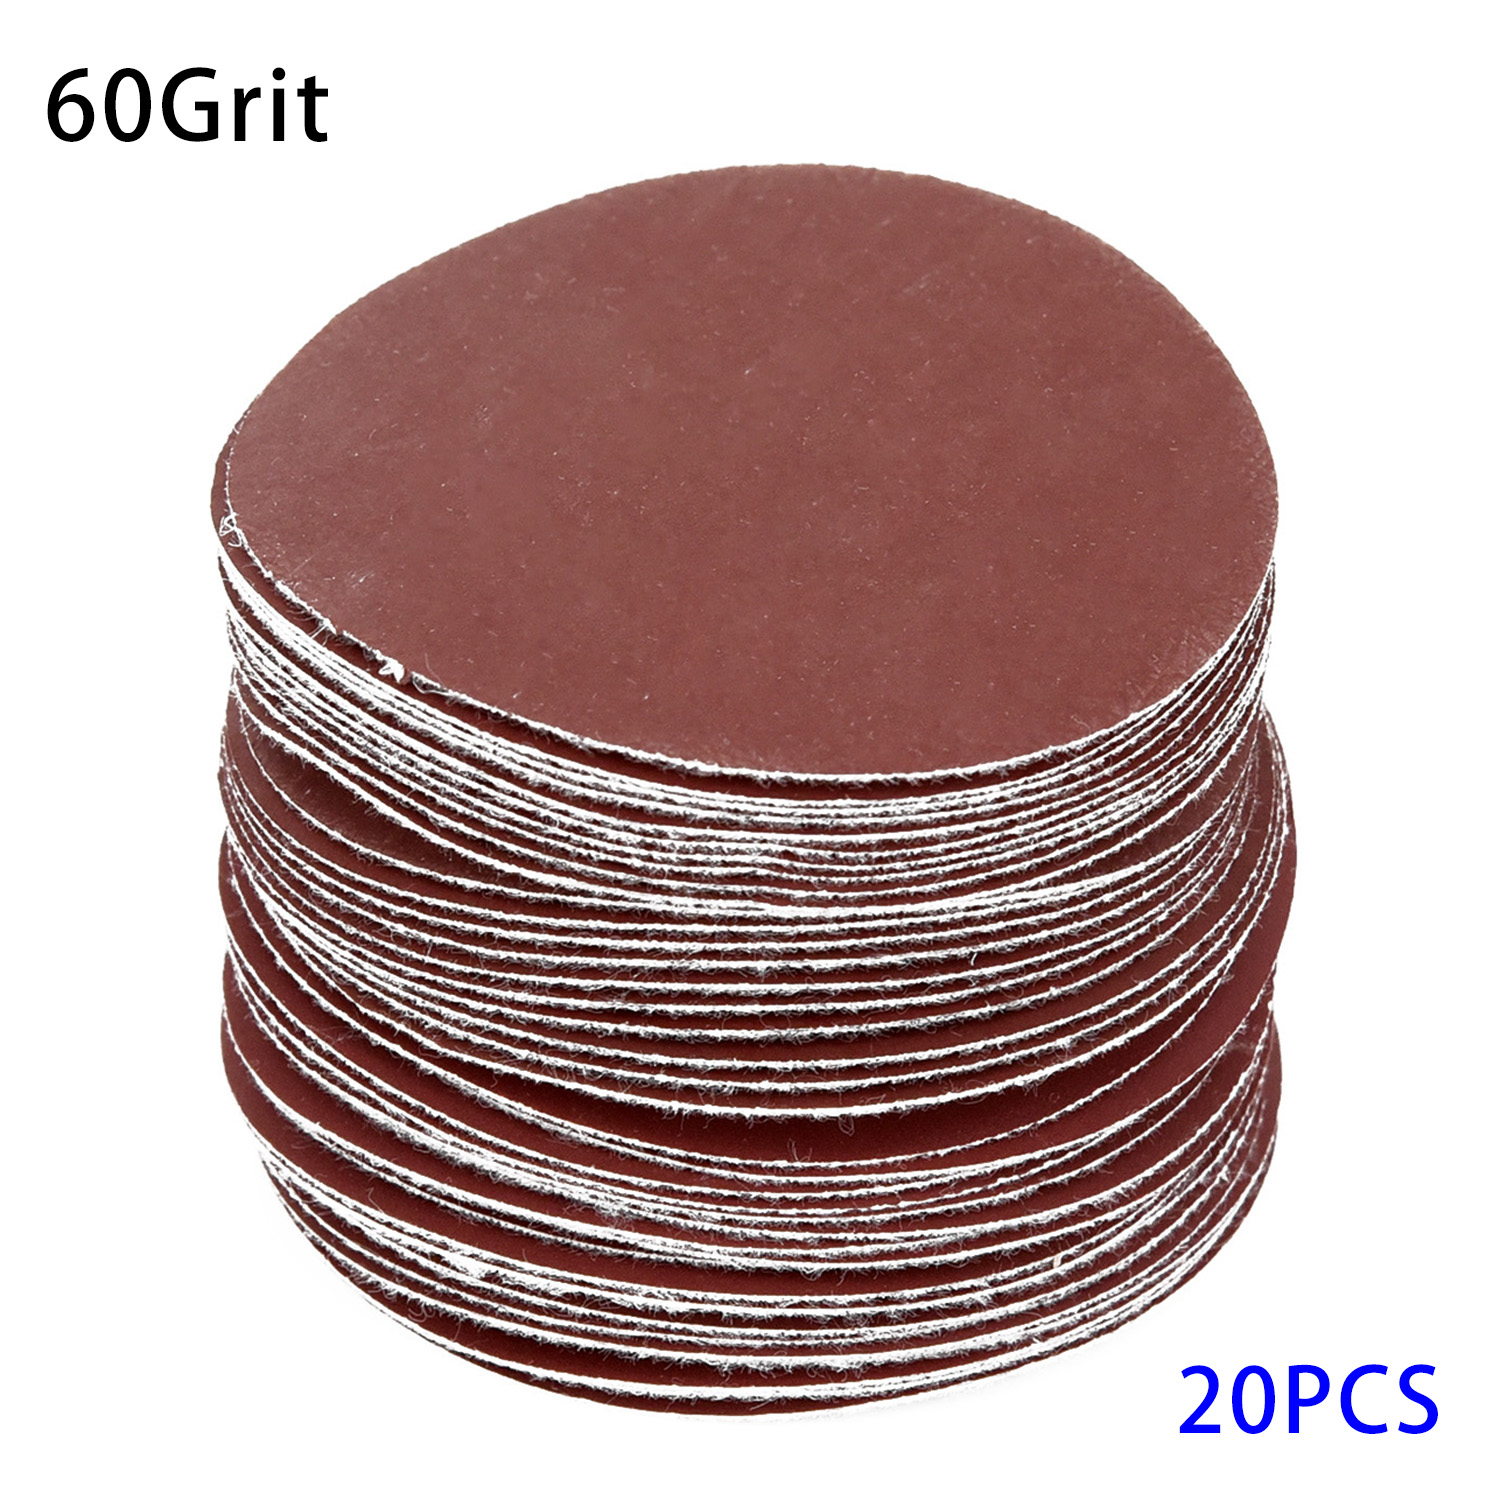 20pcs 75mm 3 Inch 40-3000Grit Sander Discs Sandpapers Sanding Polishing Pads Home Garden Supplies